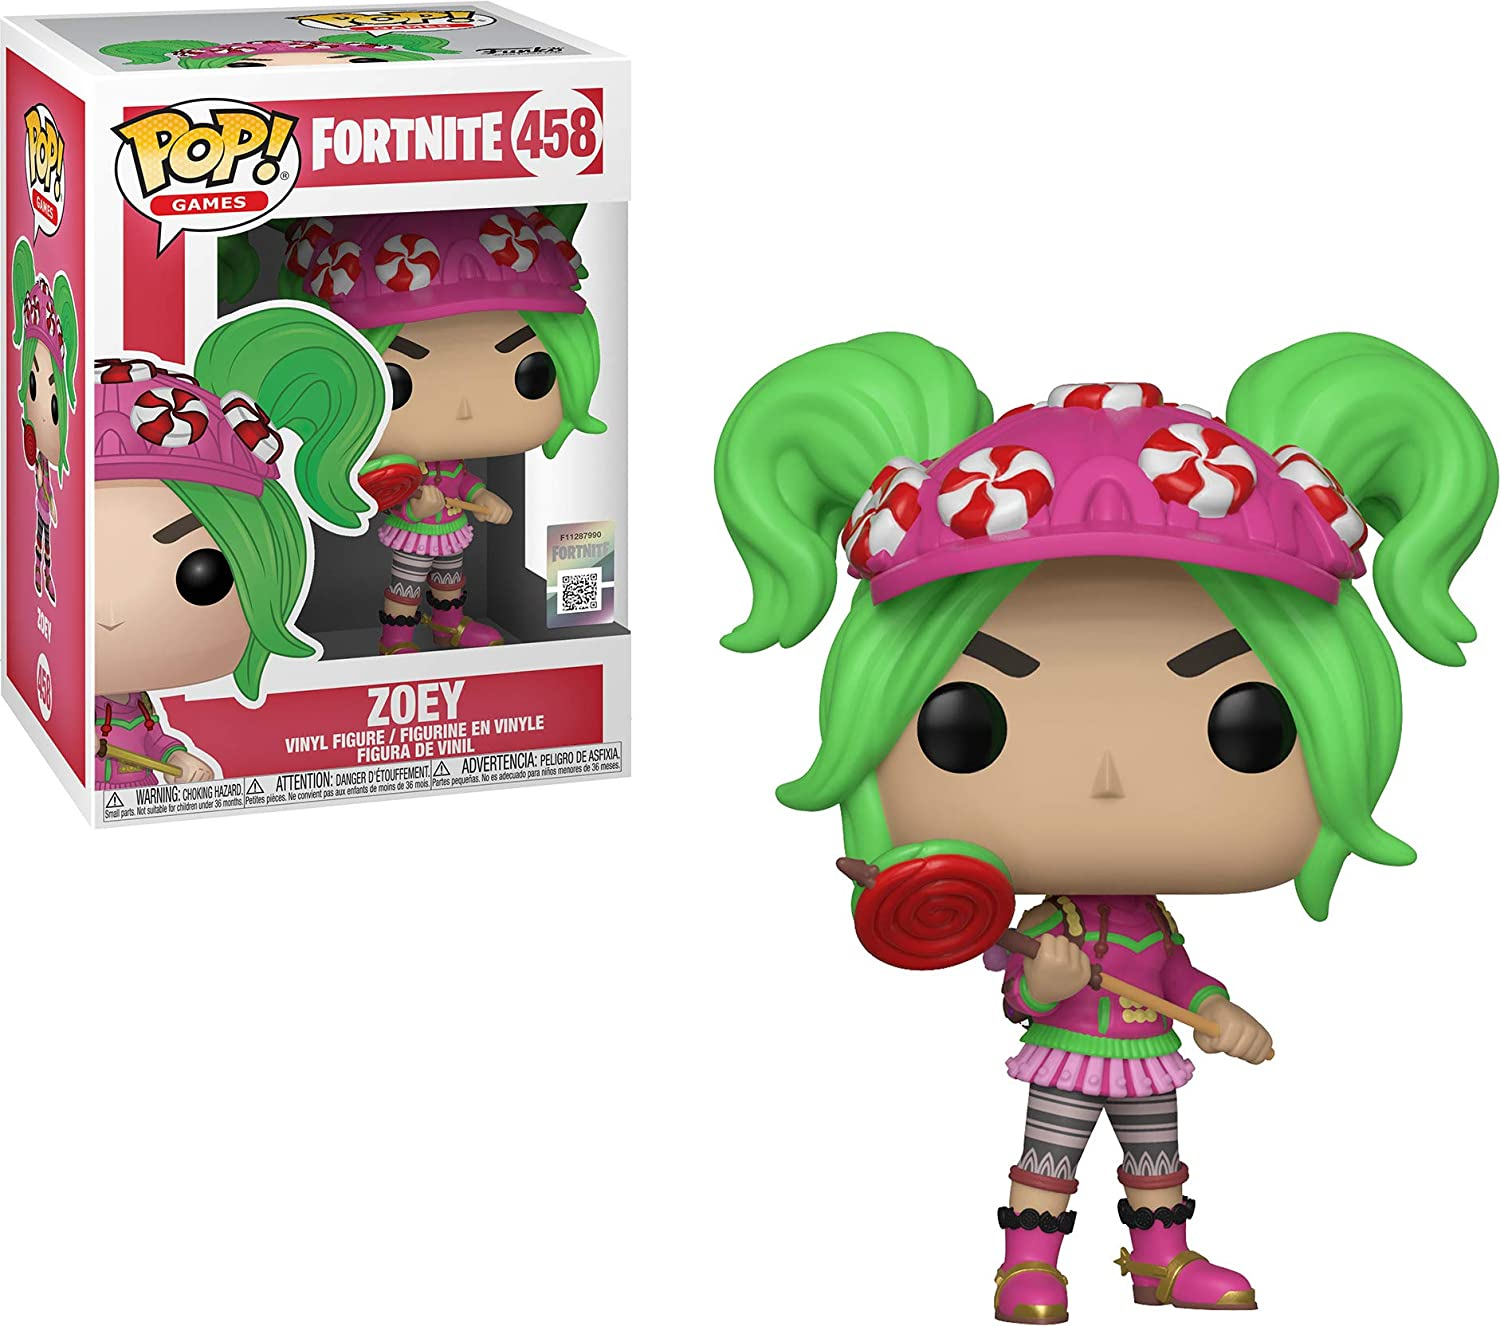 acheter figurine pop fortnite